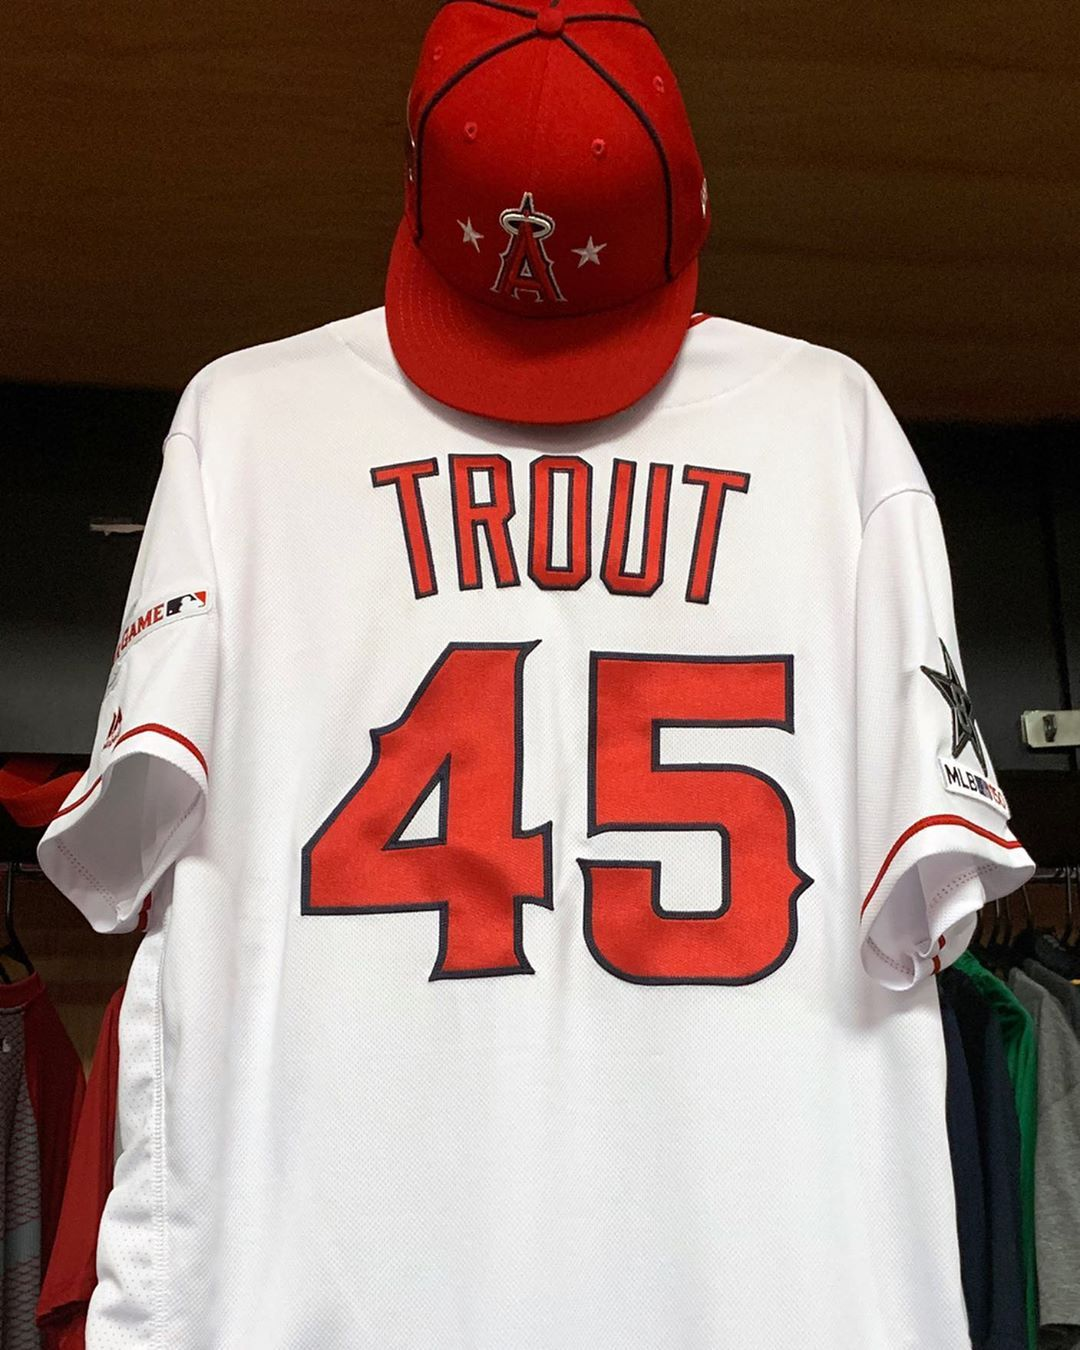 Los Angeles Angels A Tribute To Tyler Skaggs At The Allstargame Miketrout And Tommy La Stella W Los Angeles Angels Mlb American League Los Angeles